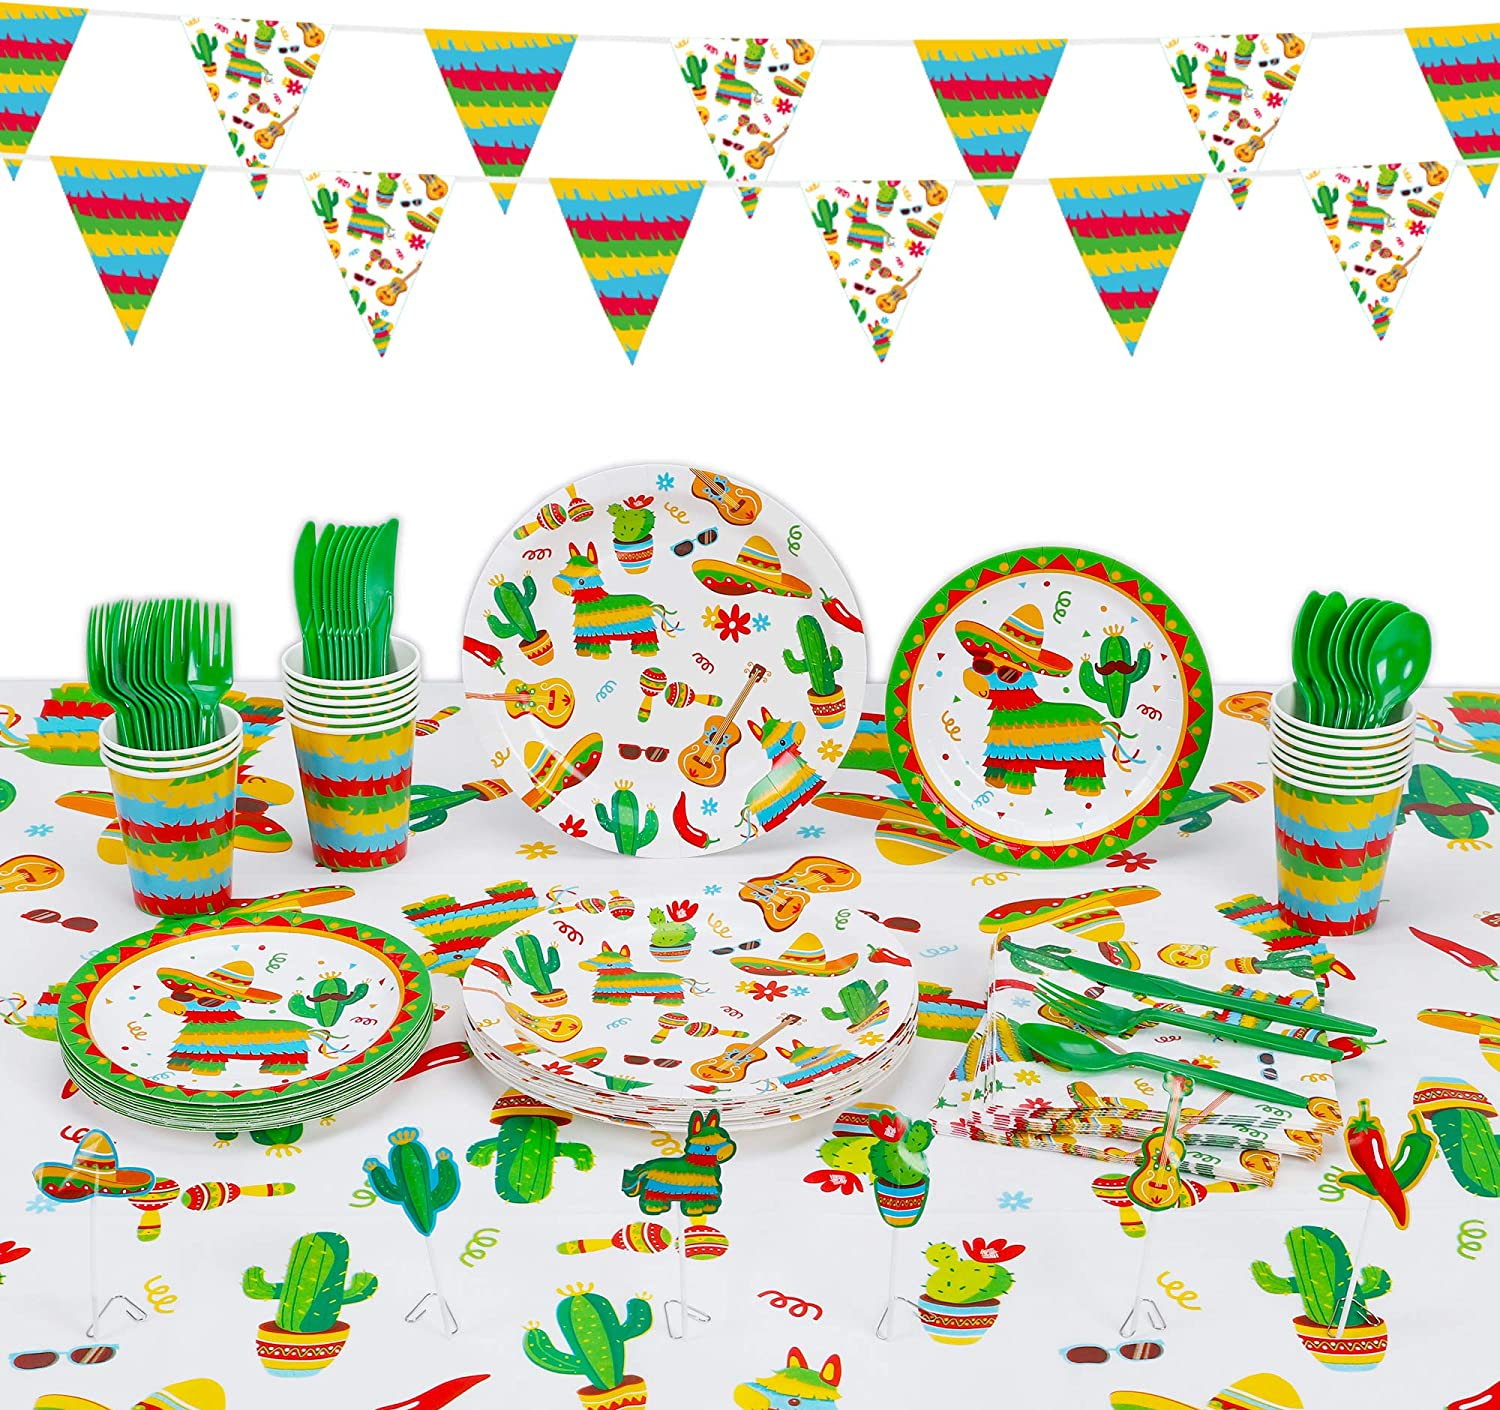 Decorlife Fiesta Party Supplies, 130PCS for 16 Guests, Mexican Party Decorations for Birthday, Taco Plates, Fiesta Napkins, Cups, Mexican Tablecloth, Cupcake Toppers, Triangle Flags Bunting, Flatware Included